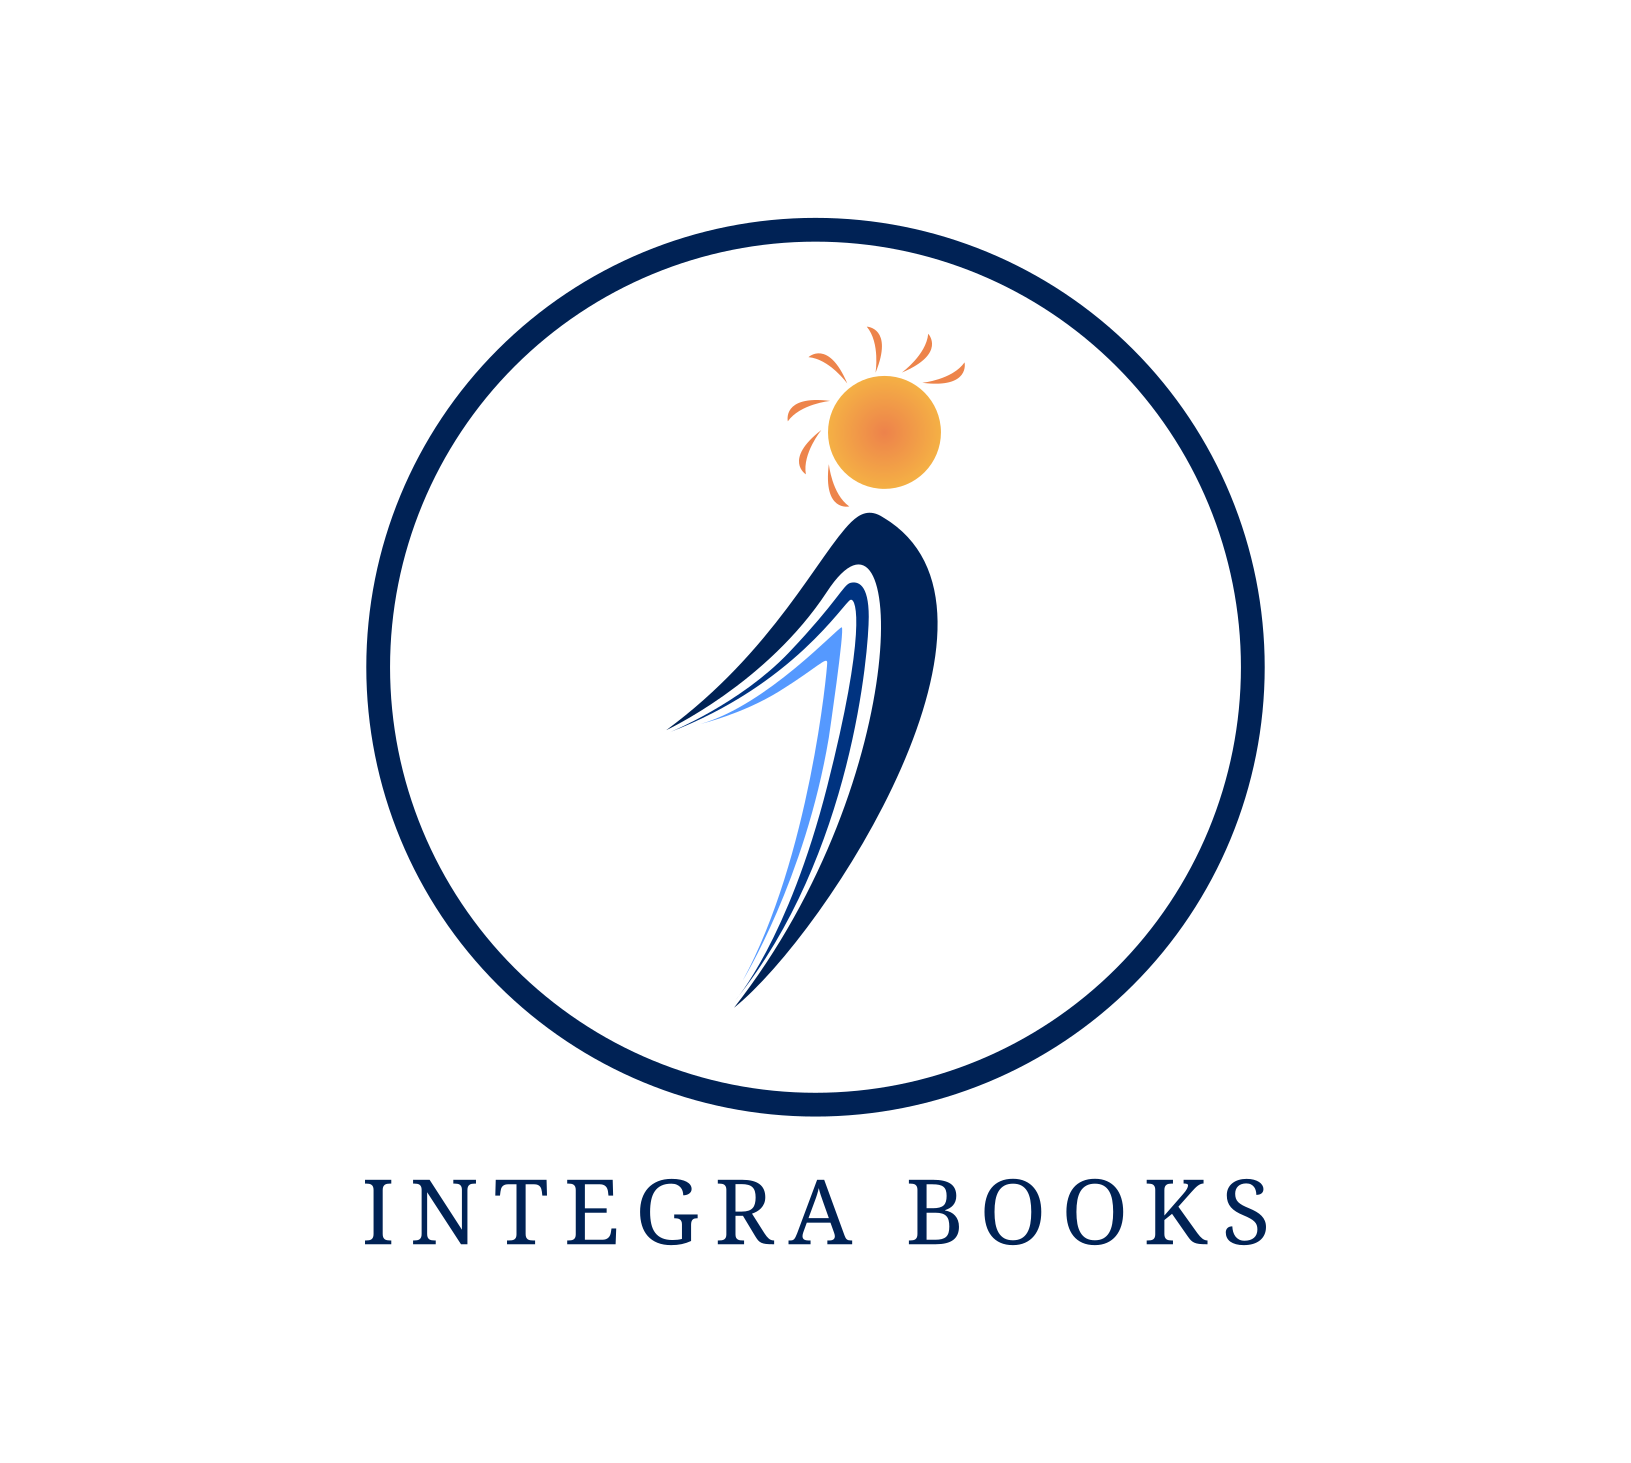 Integra Books